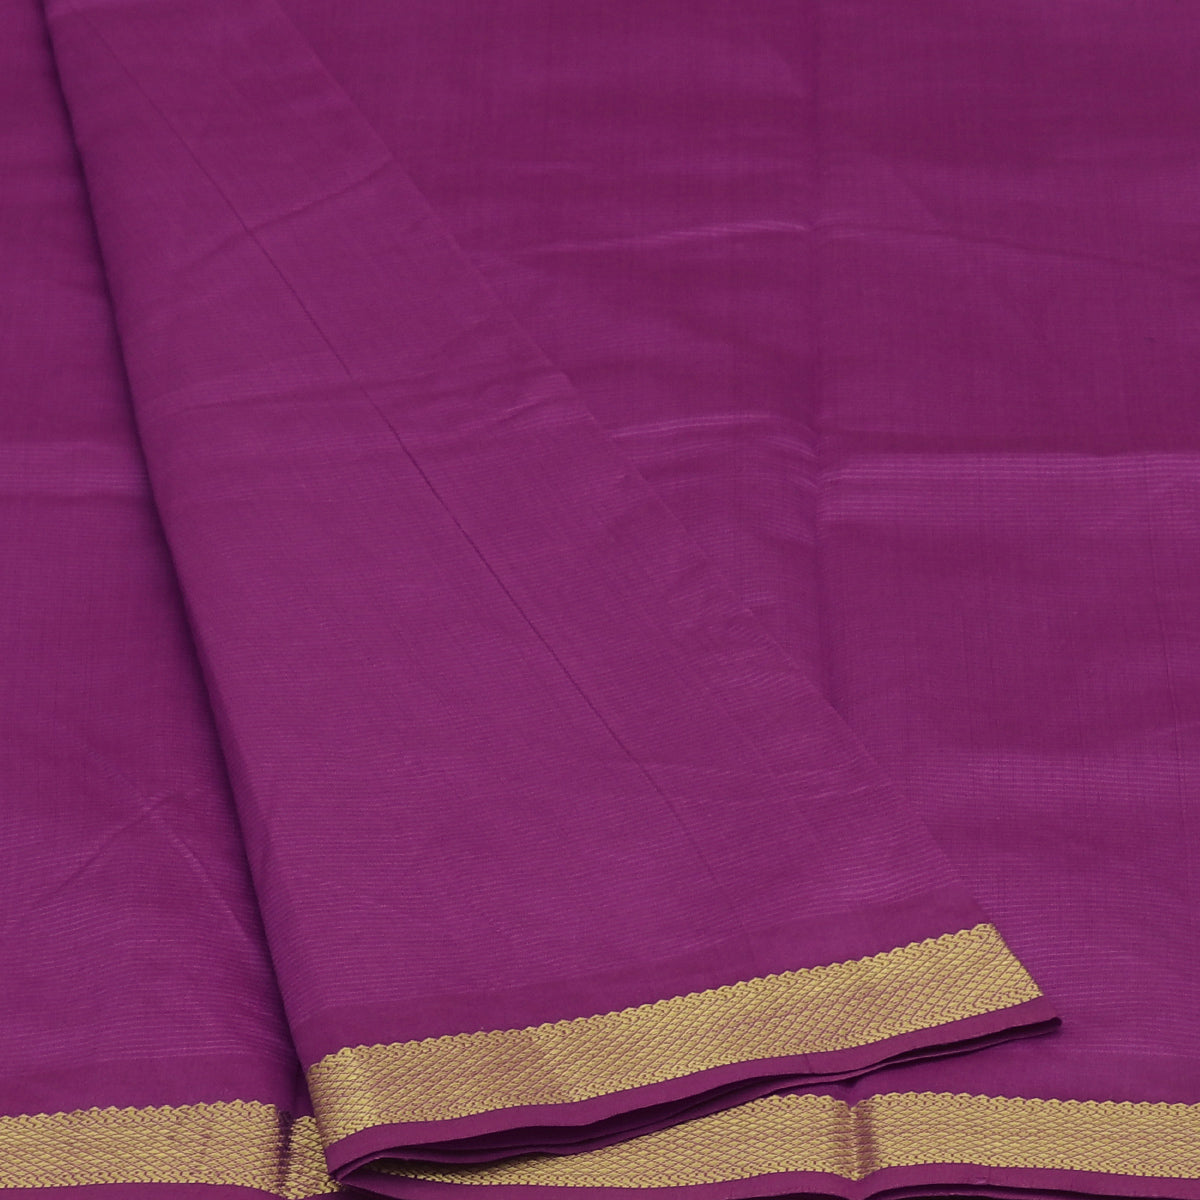 Blended Cotton Saree Onion Color and Maroon with zari border 9 yards